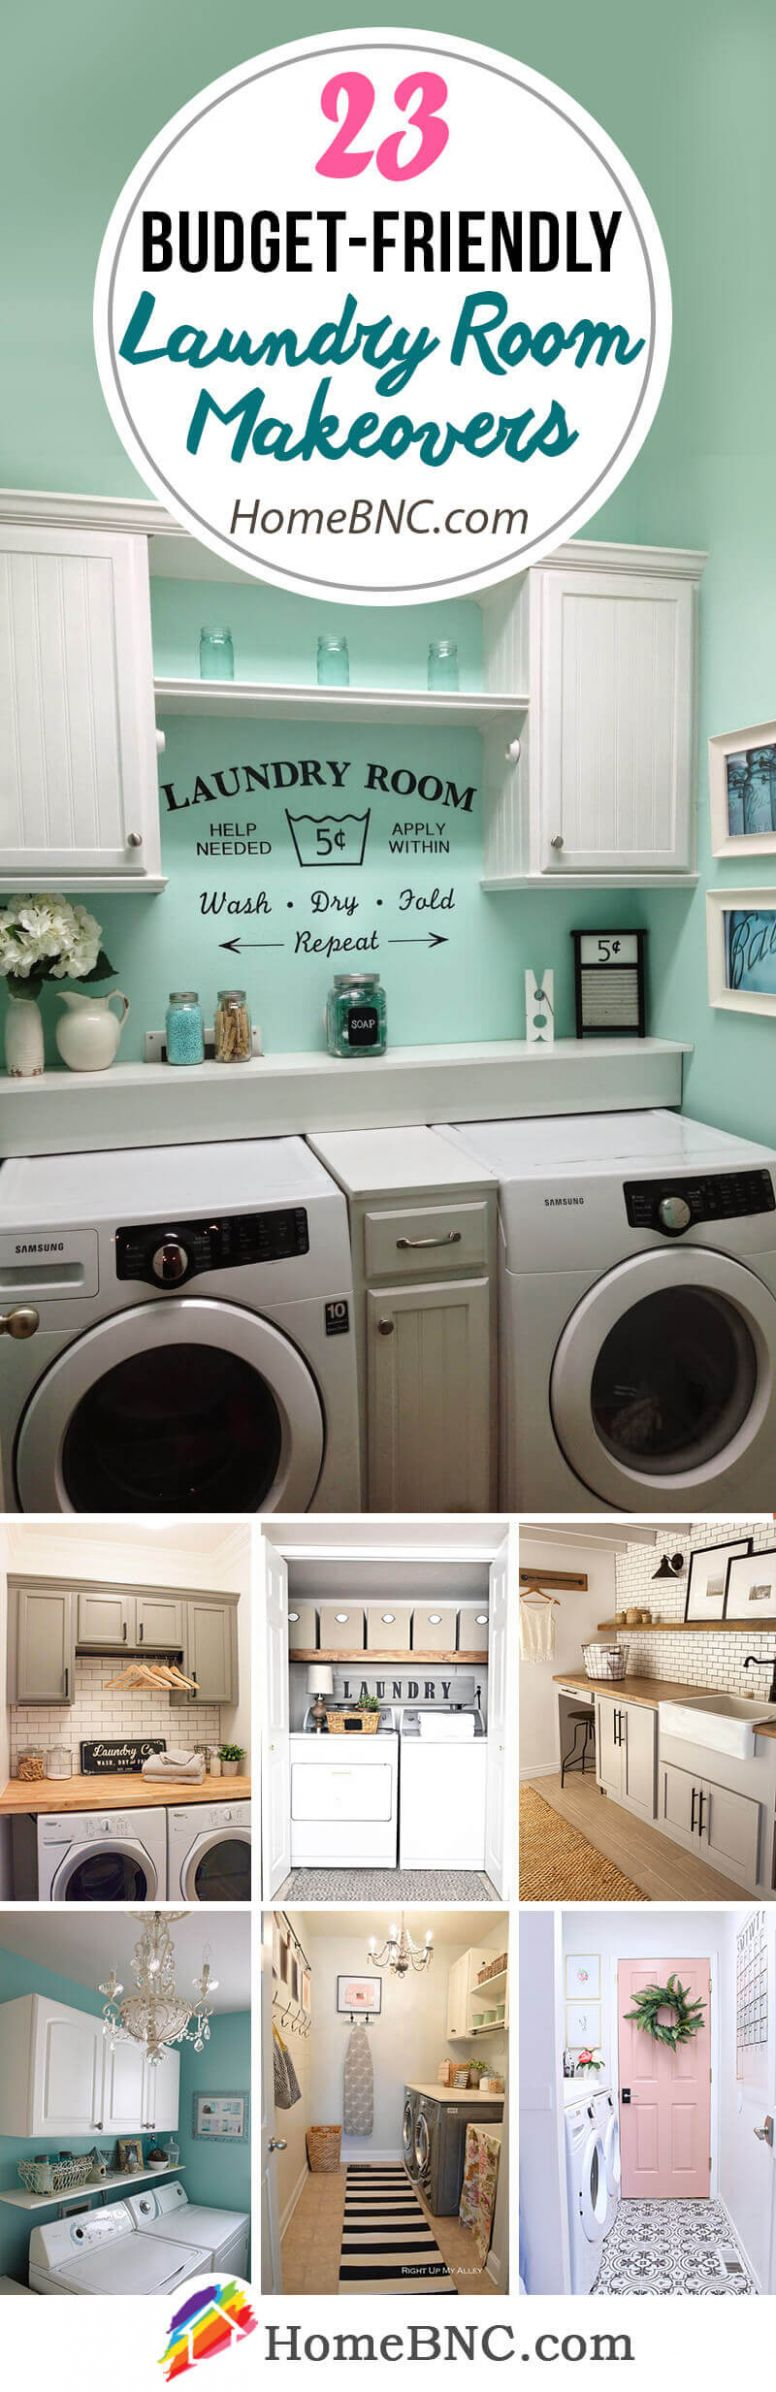 10 Best Budget Friendly Laundry Room Makeover Ideas and Designs ..